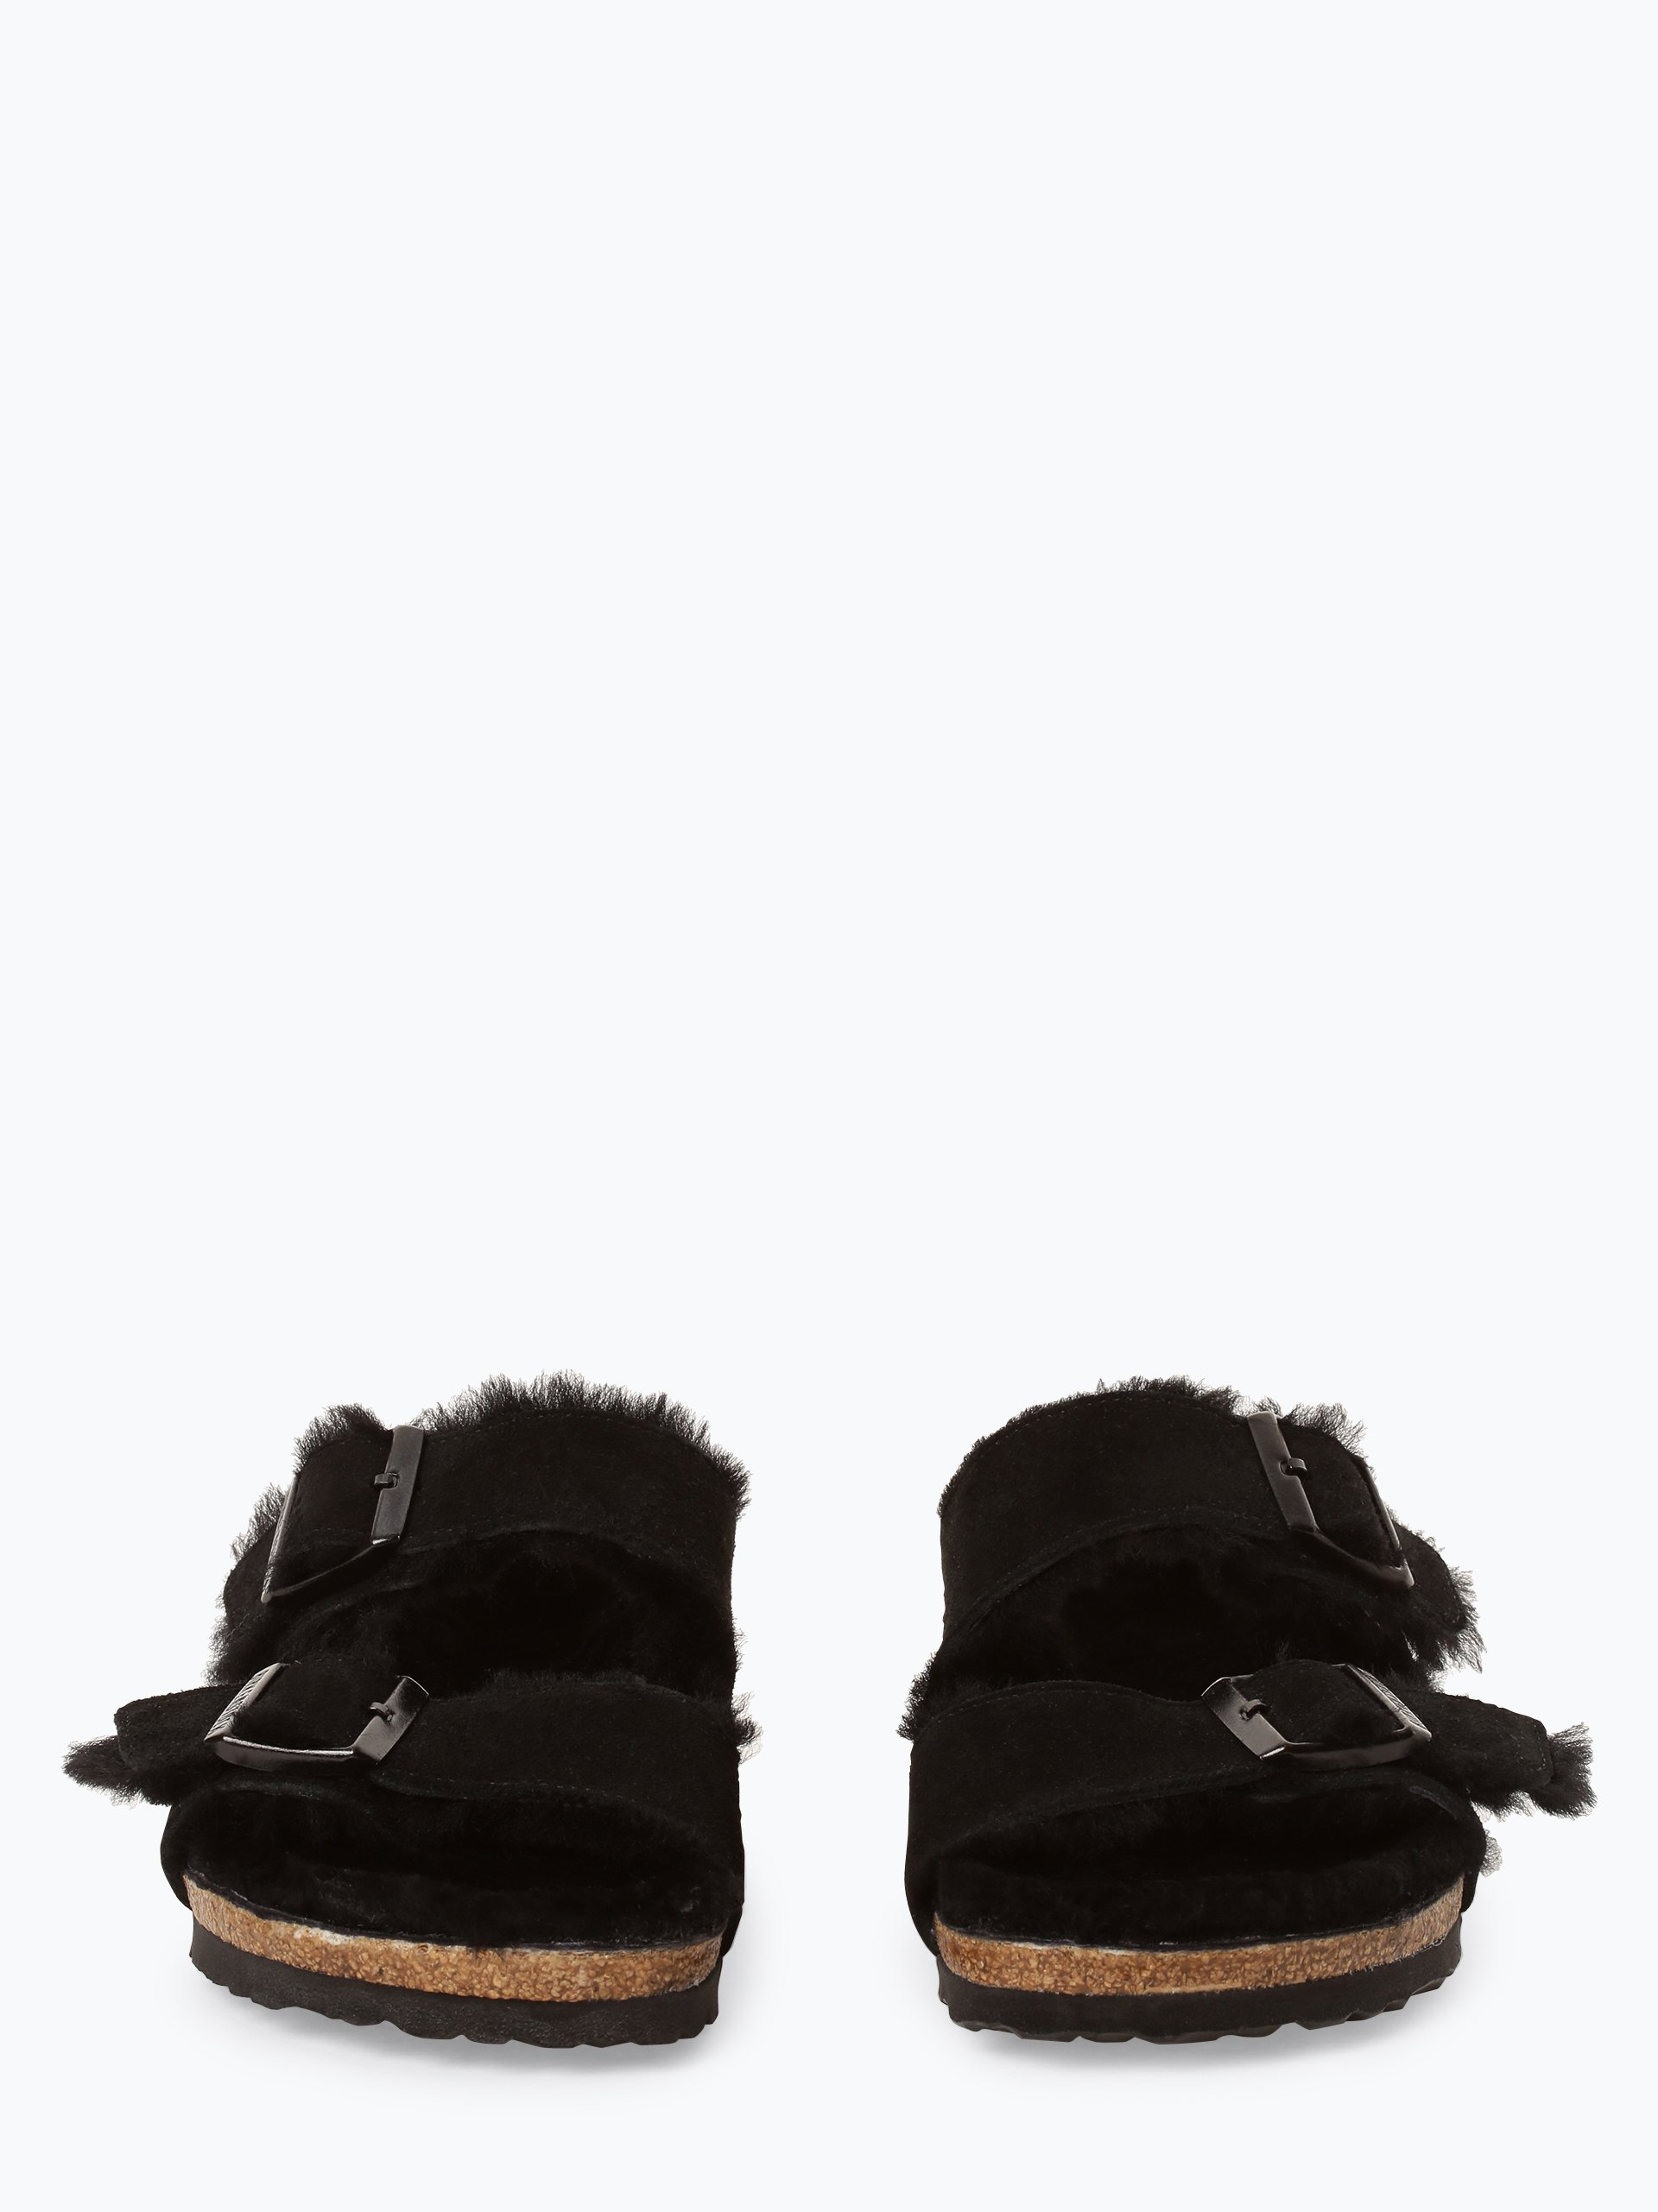 birkenstock damen sandalen aus leder arizona fur schwarz uni online kaufen vangraaf com. Black Bedroom Furniture Sets. Home Design Ideas